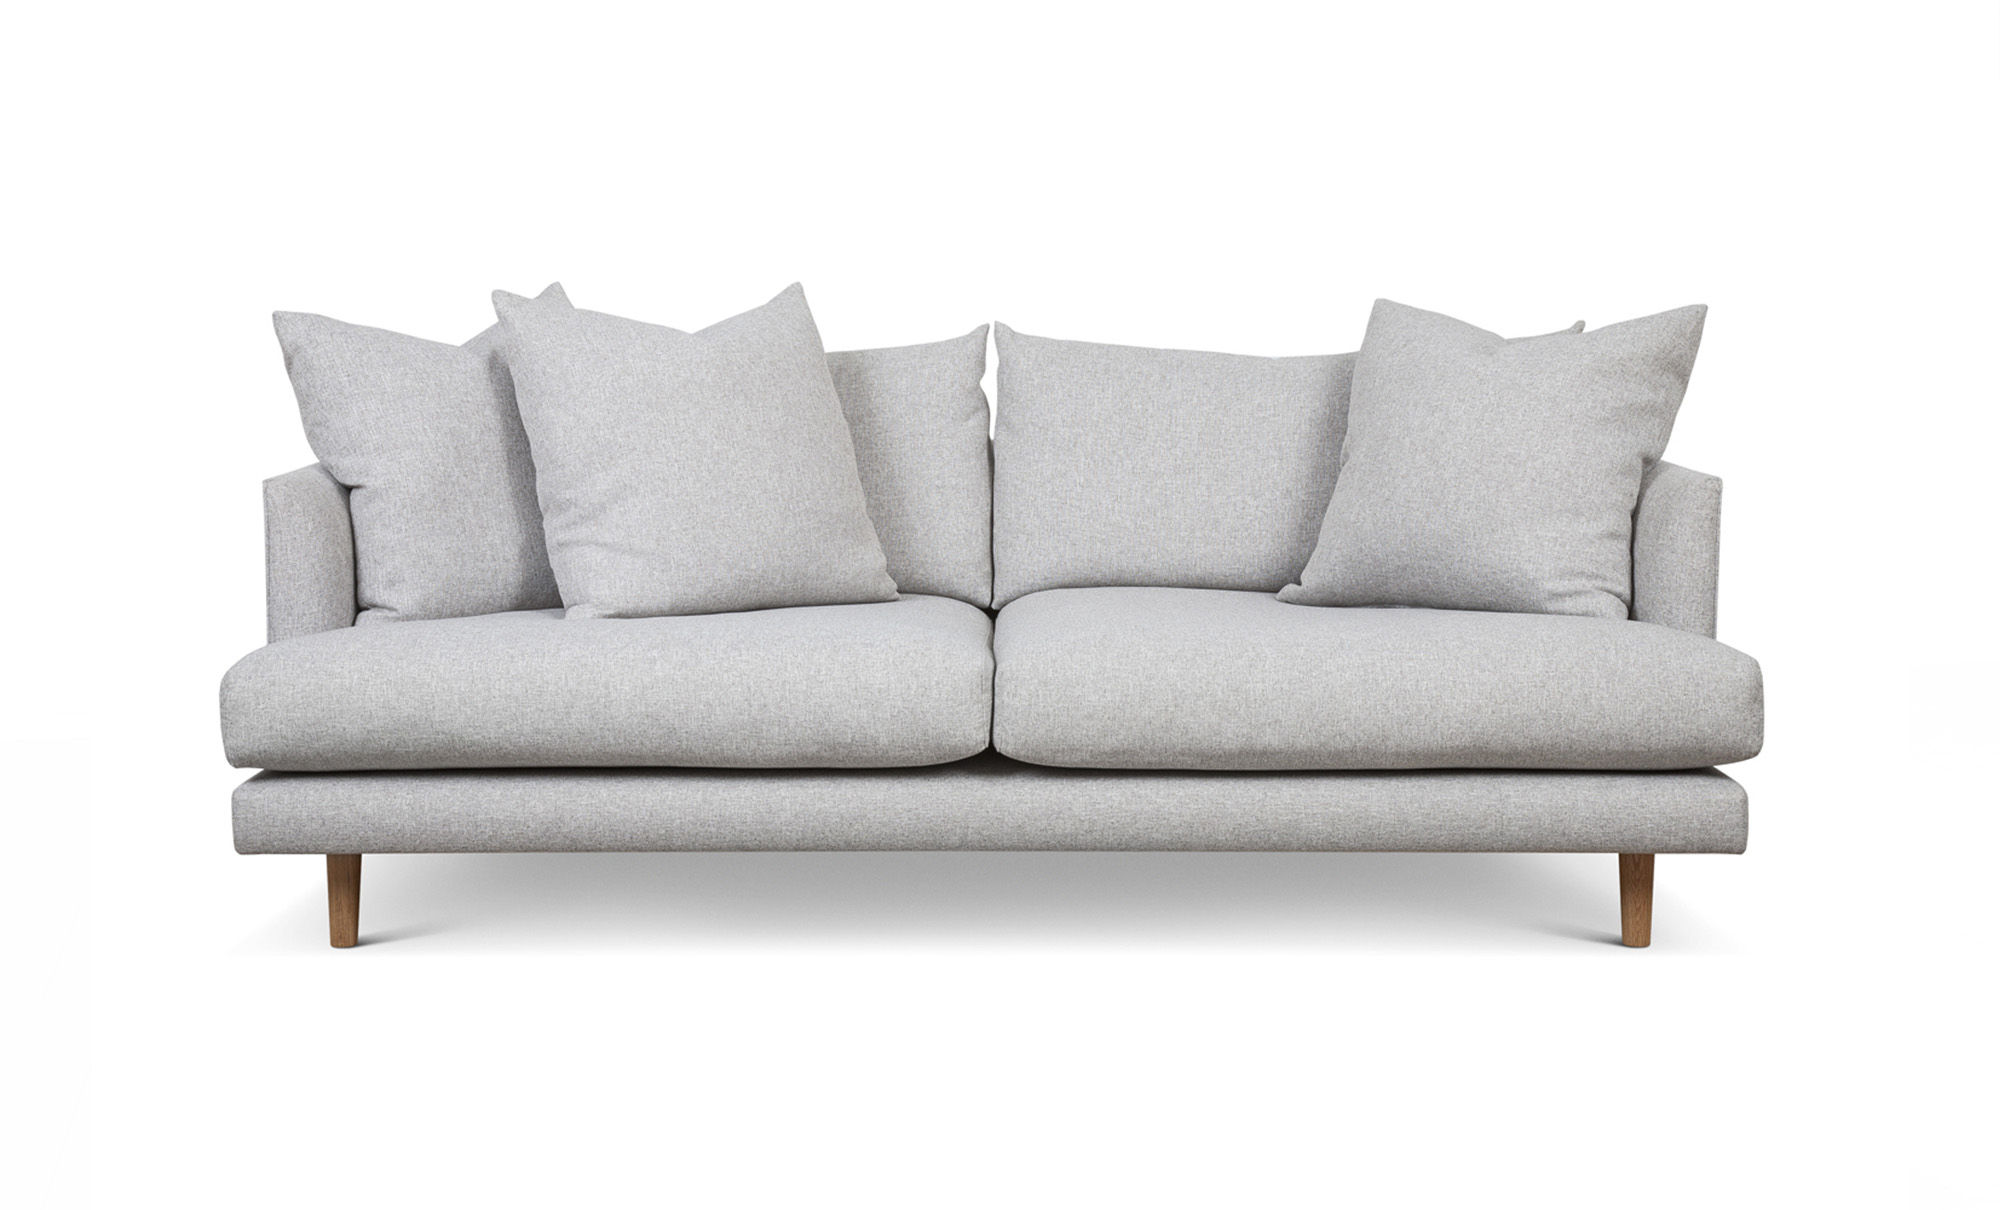 Frankie deep sofas fanuli furniture for Deep sofas for sale